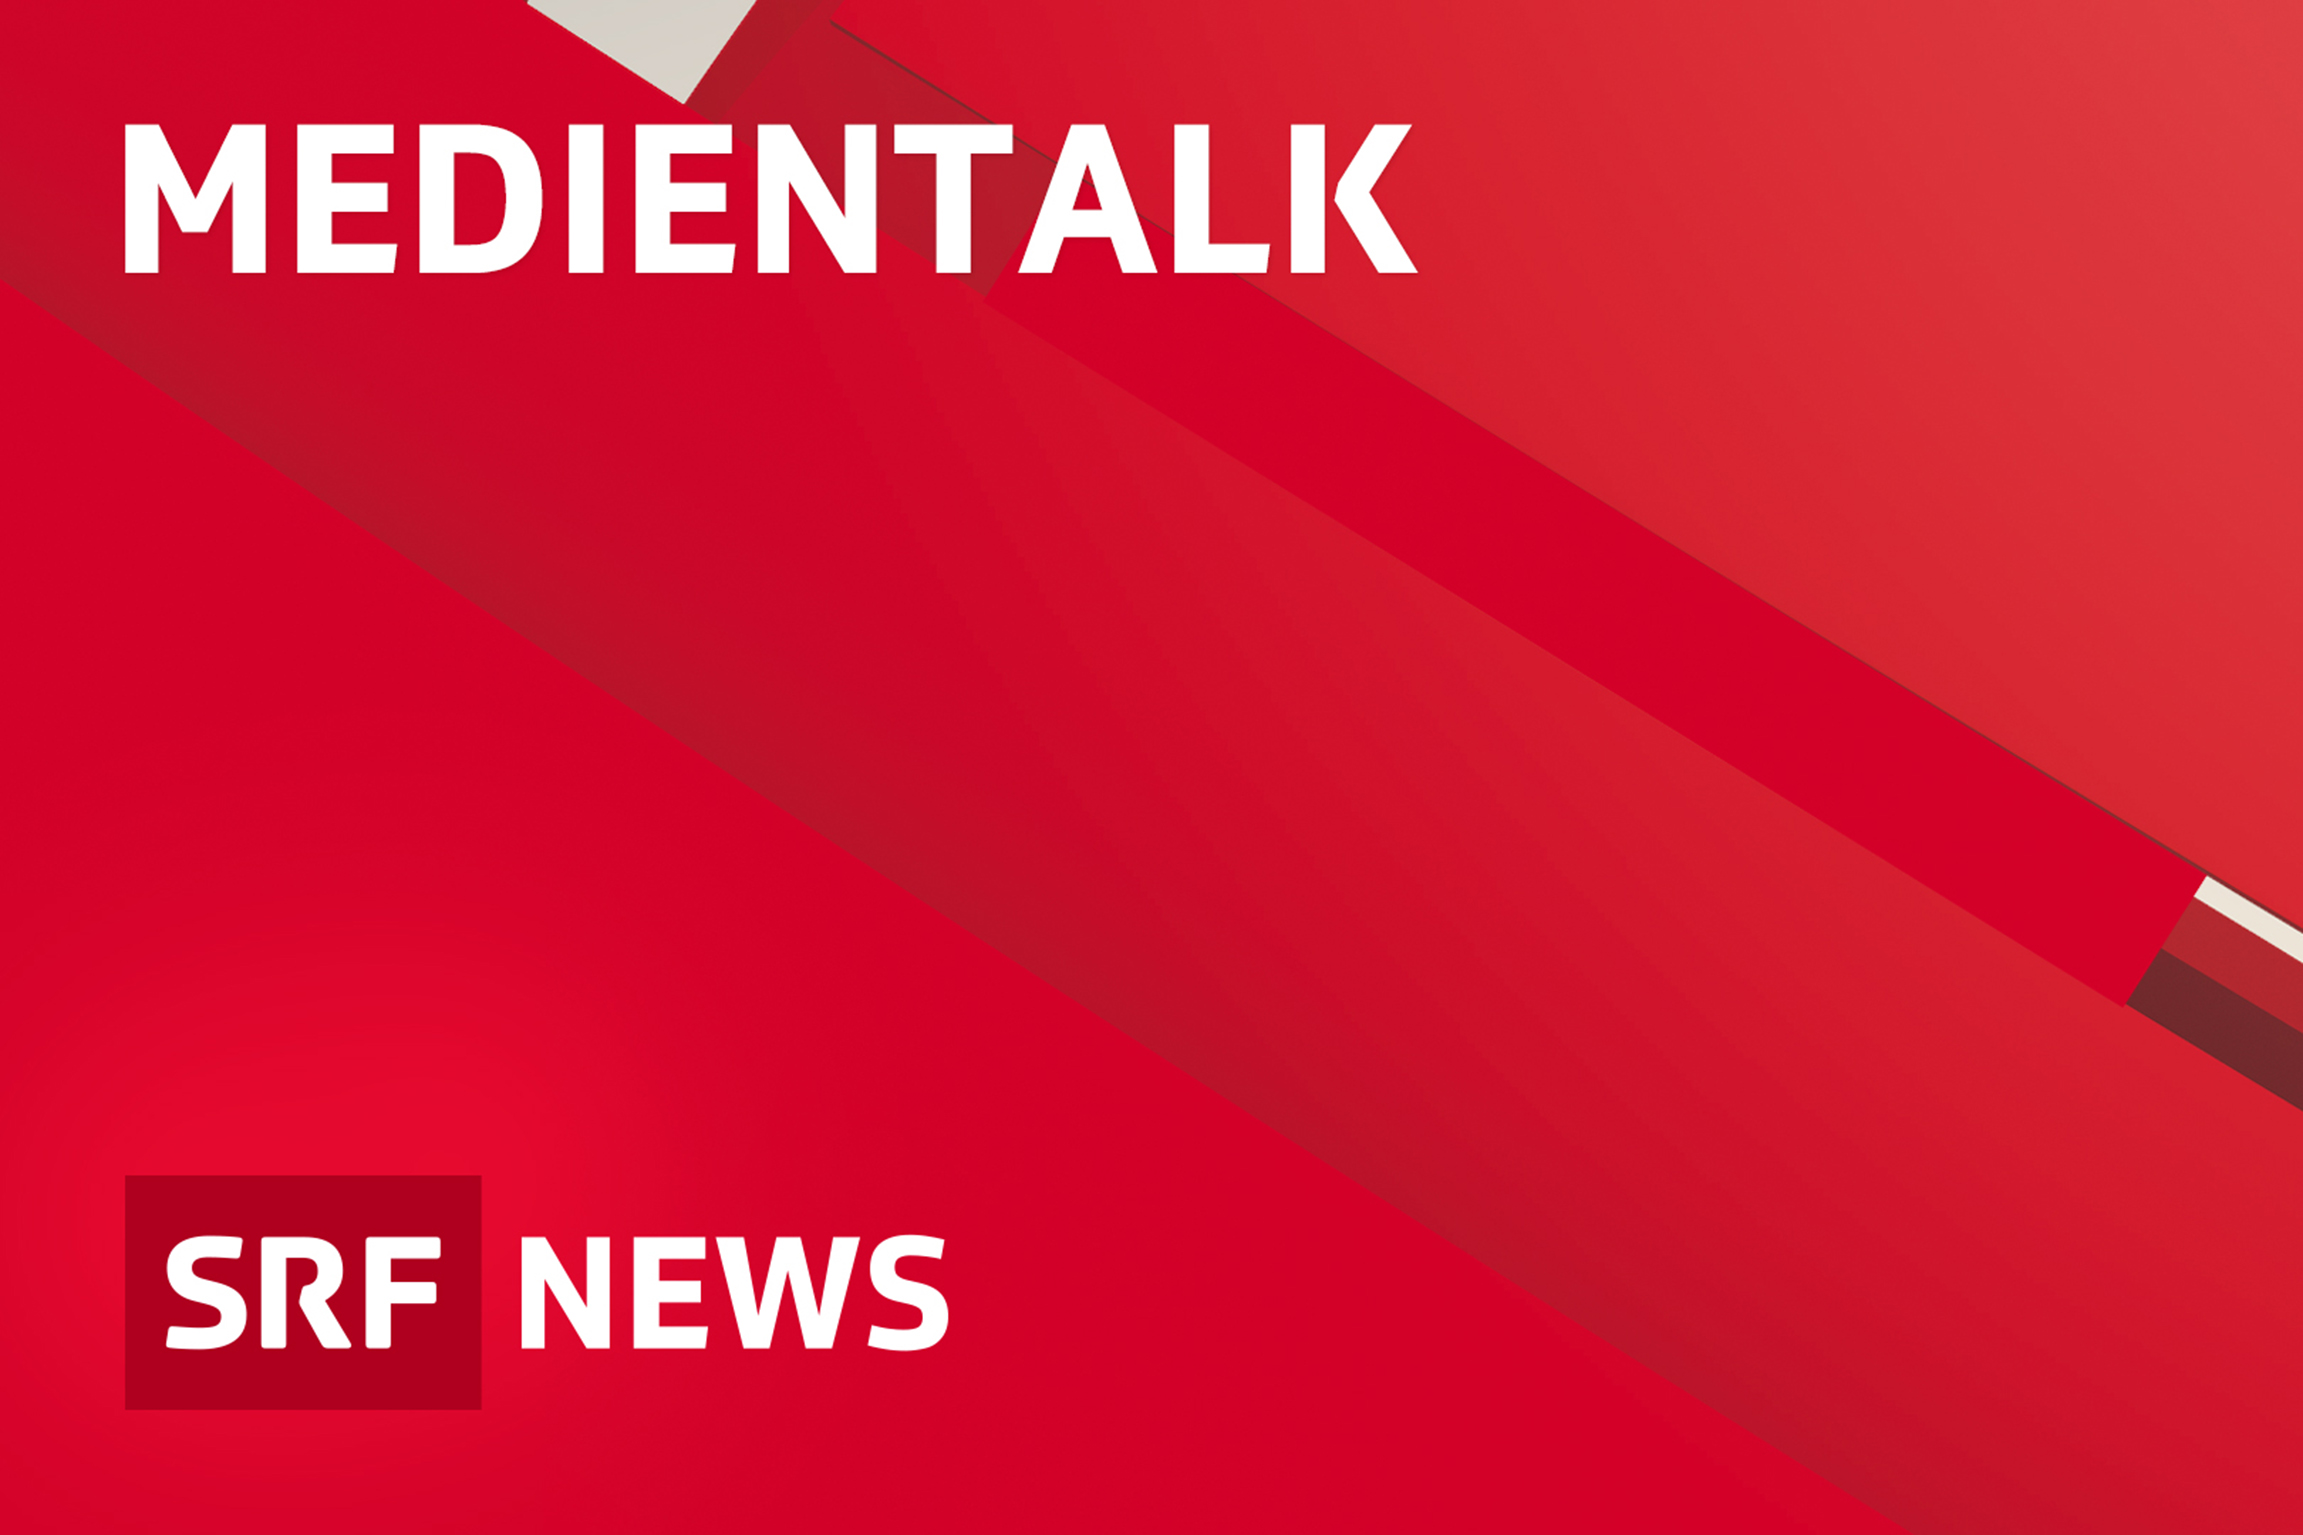 Medientalk Radio SRF 4 News Logo